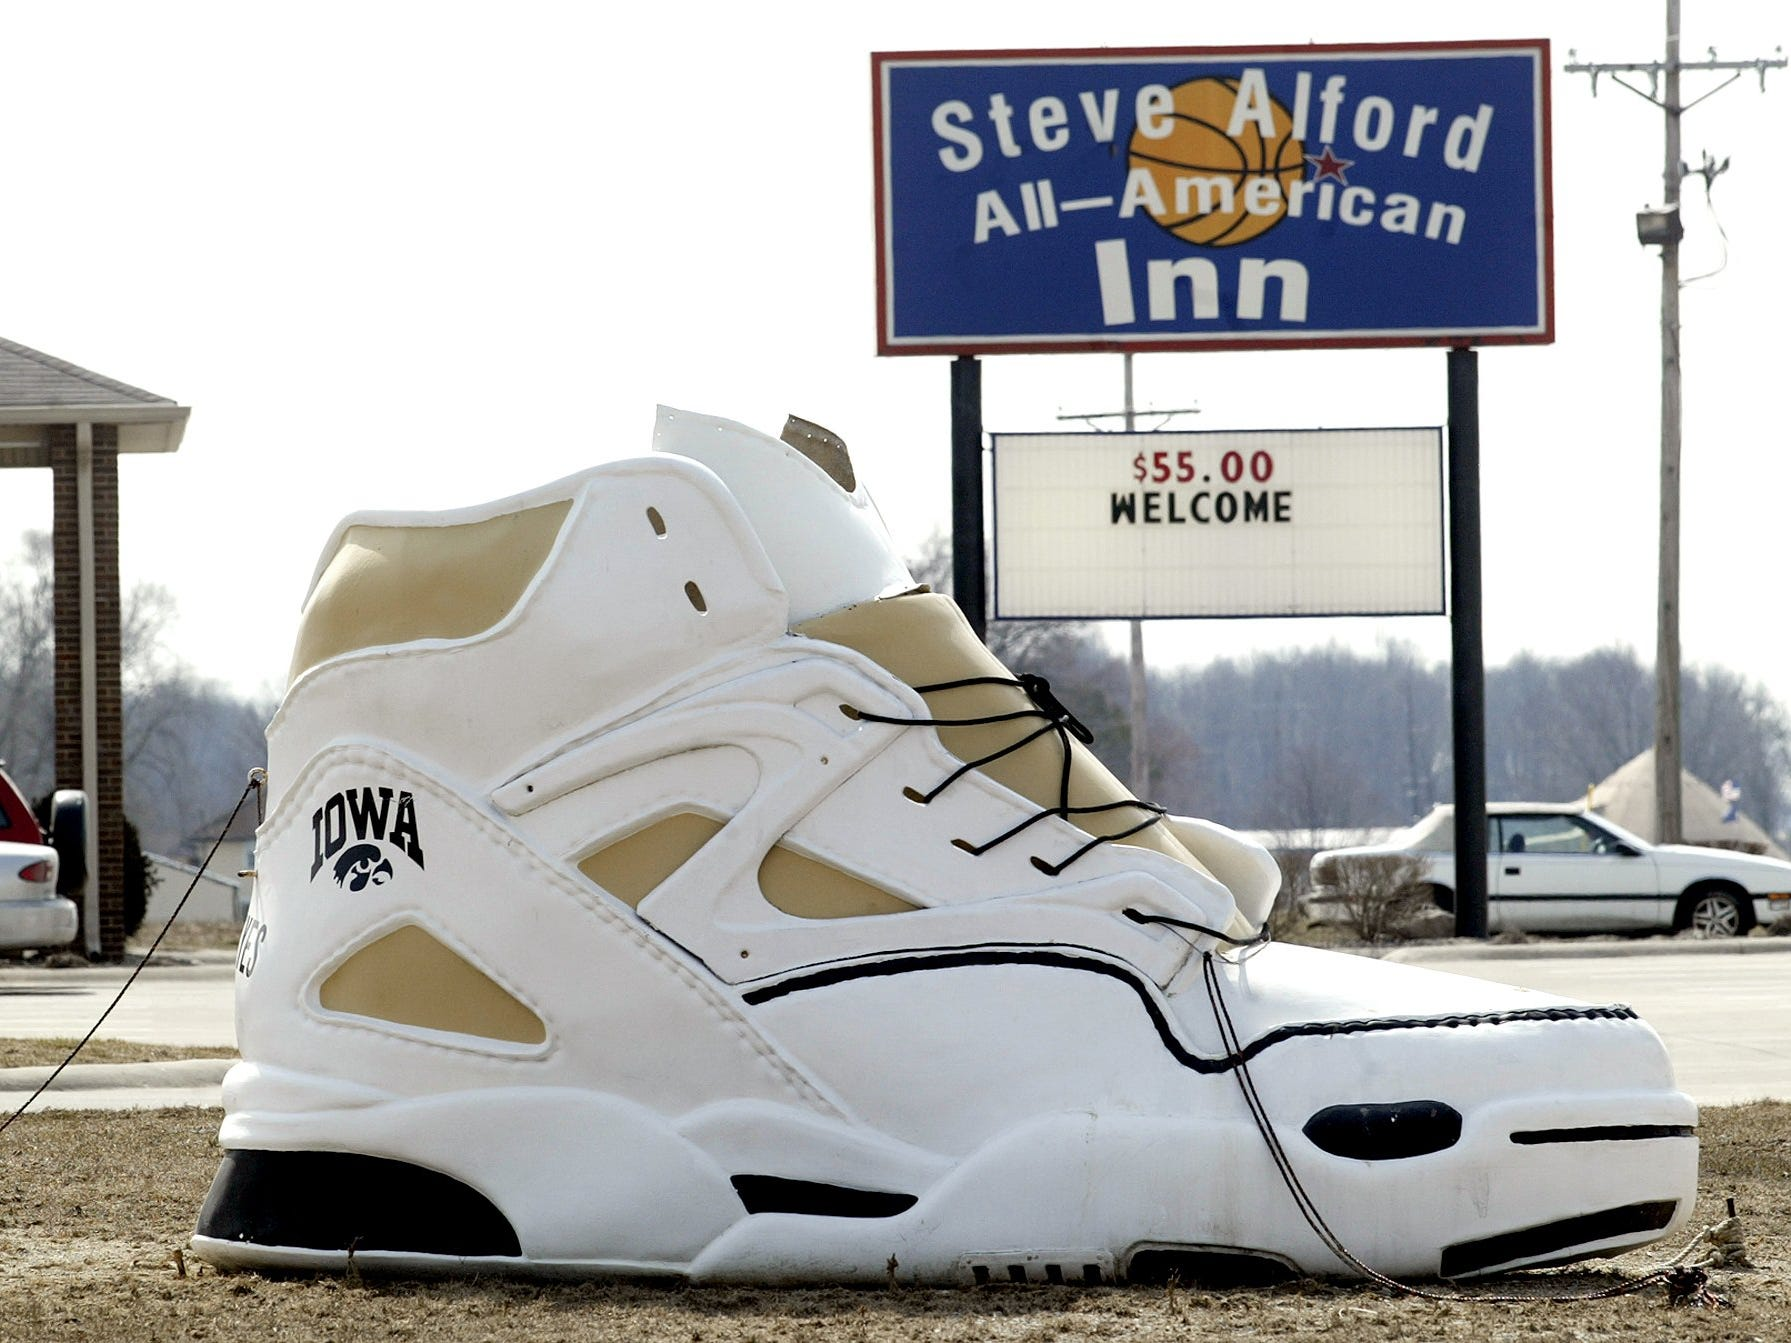 From 2005: Steve Alford's still a hero to most folks in his hometown of New Castle, Indiana, where this fiberglass replica of an Iowa Hawkeye sneaker sits in front of Alford's All-American Inn.